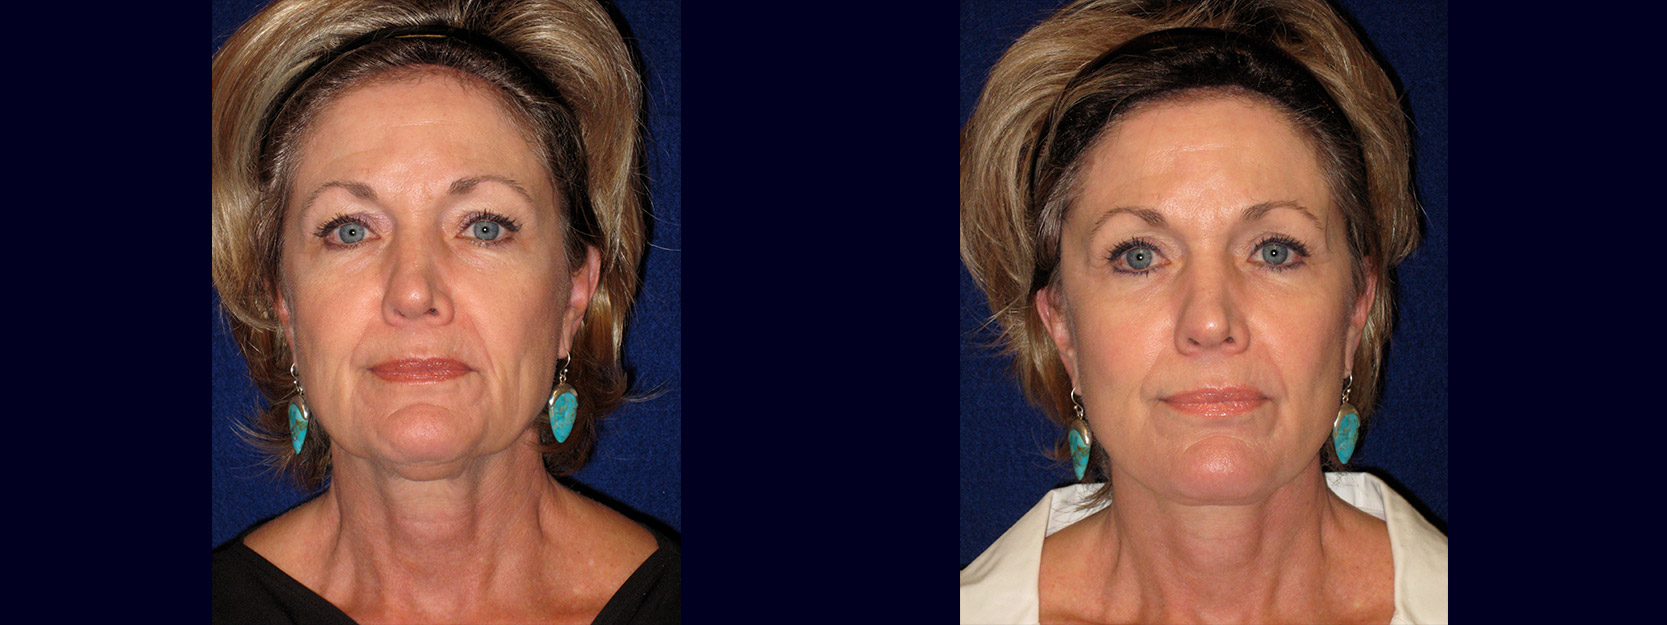 Frontal View - Face and Neck Lift with Upper Eyelid Surgery